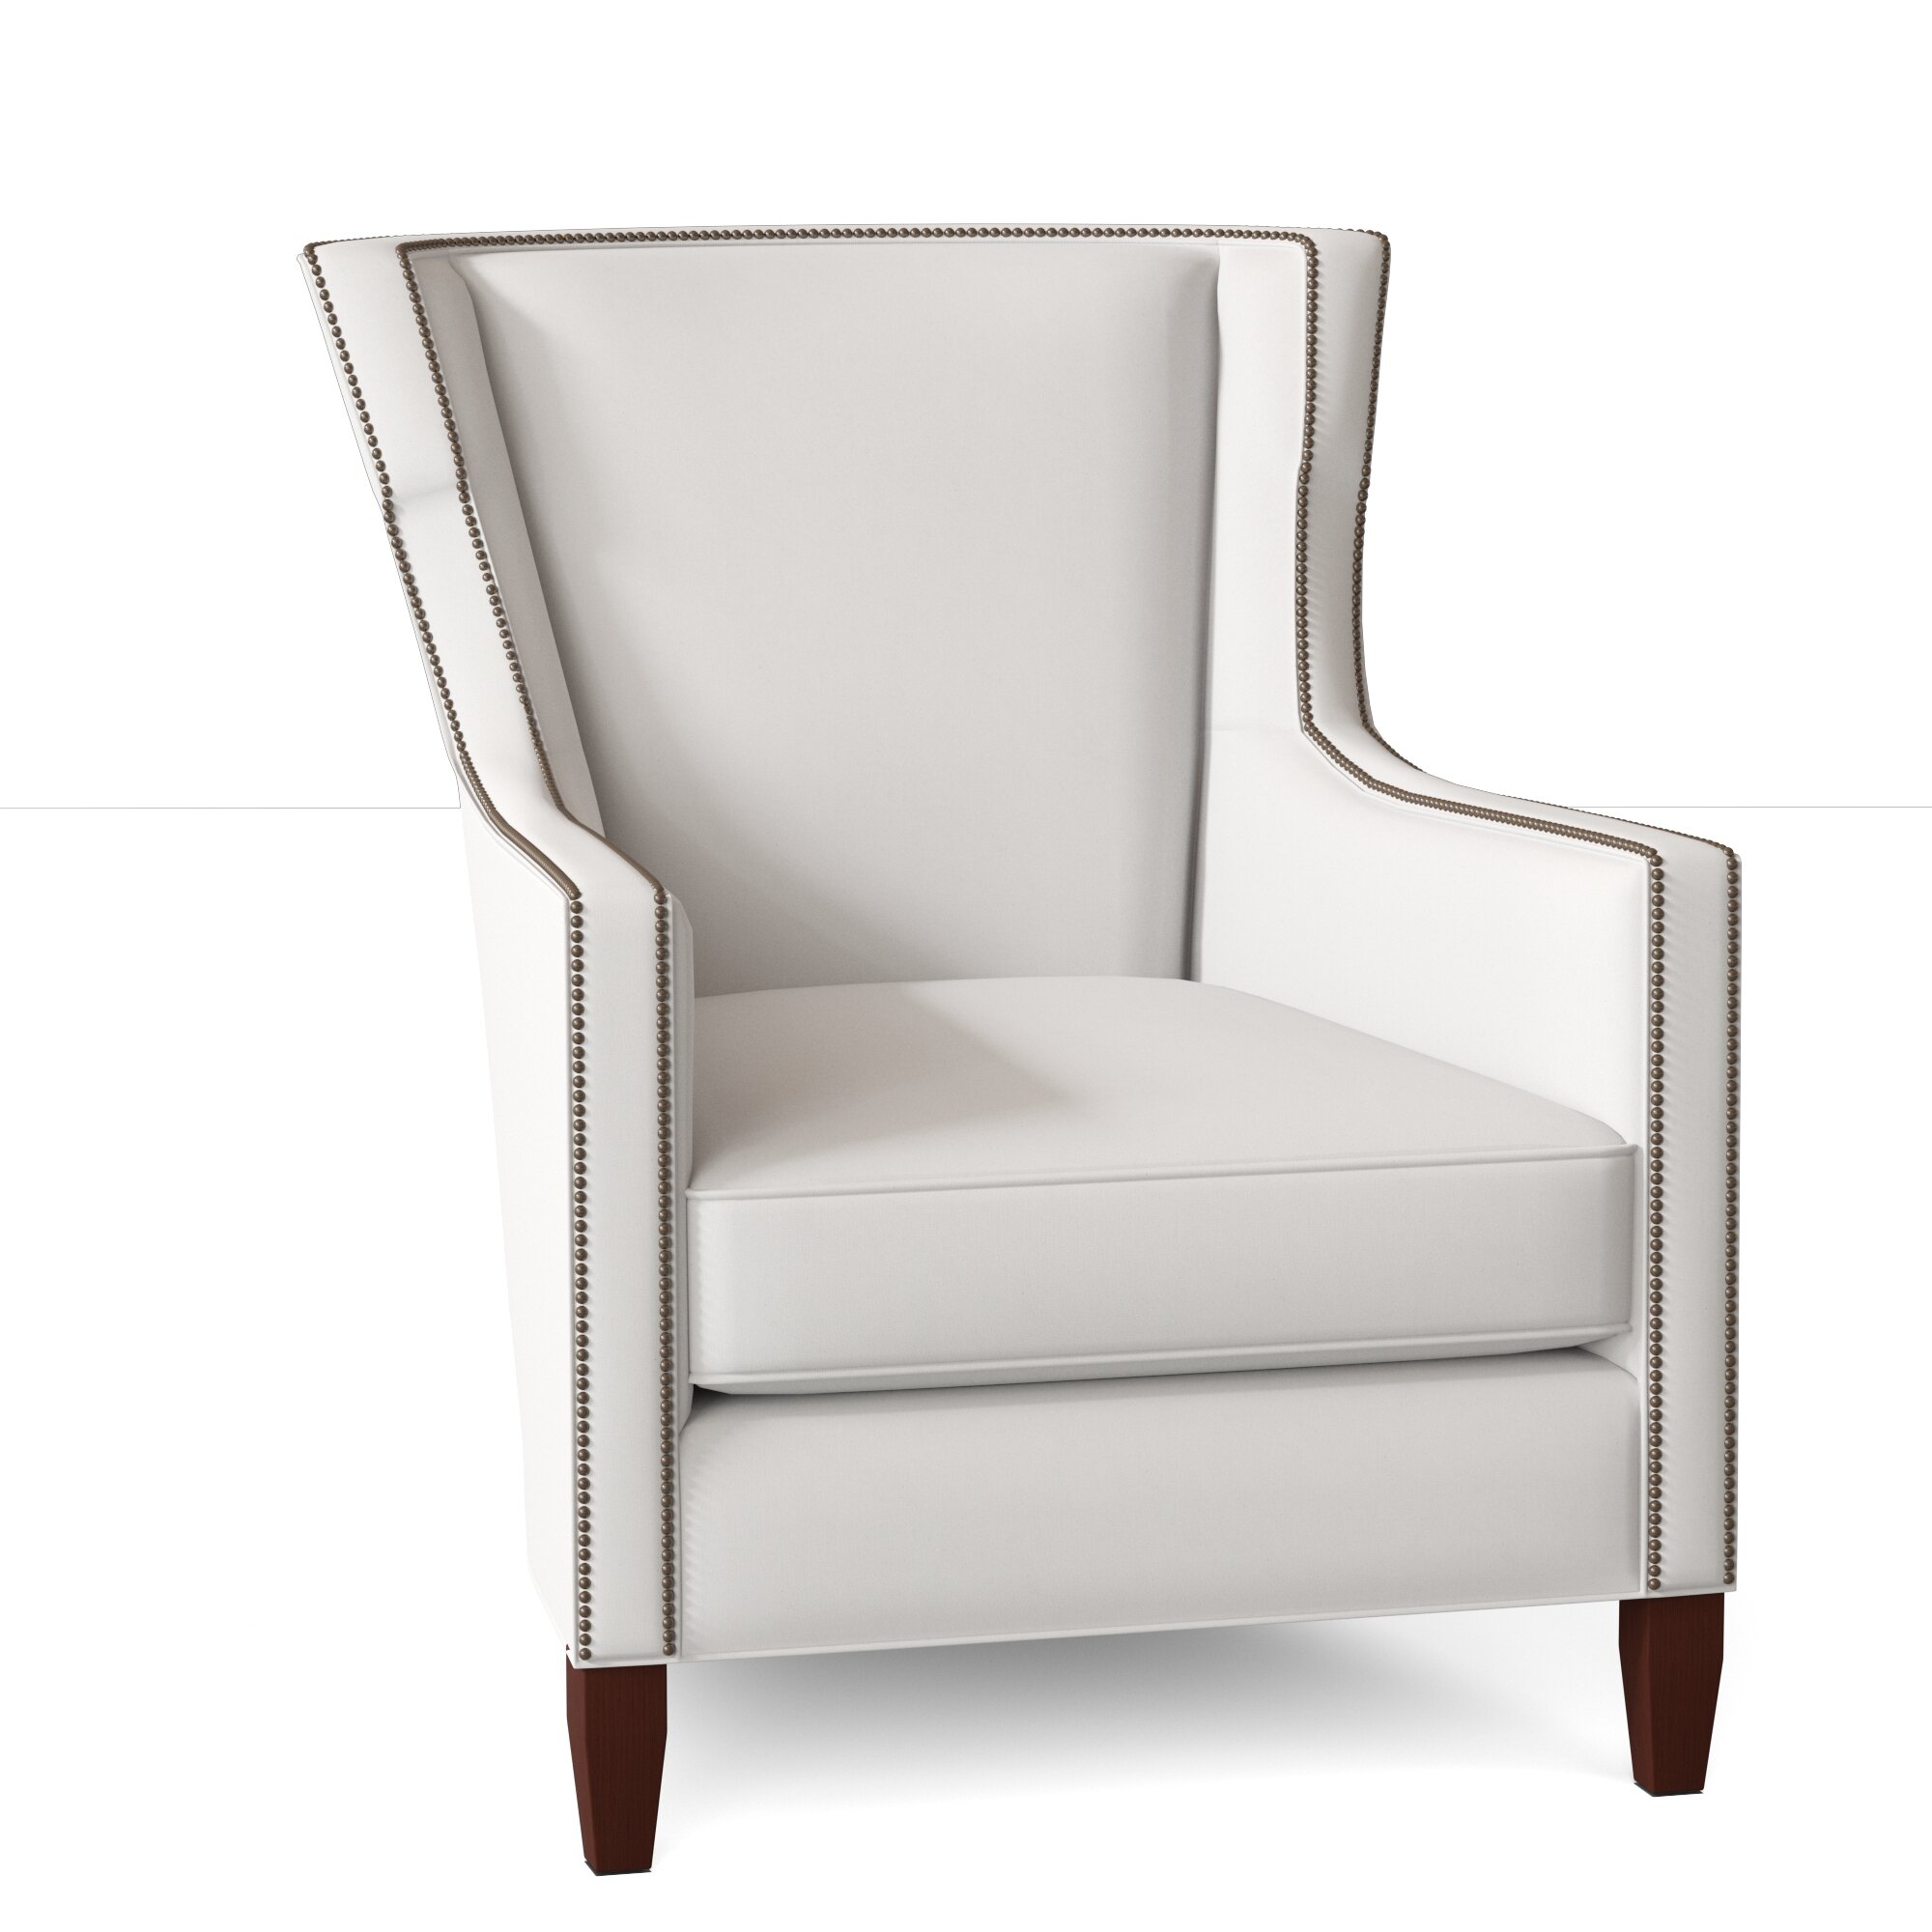 Verbena Wingback Chair Pertaining To Sweetwater Wingback Chairs (View 8 of 15)